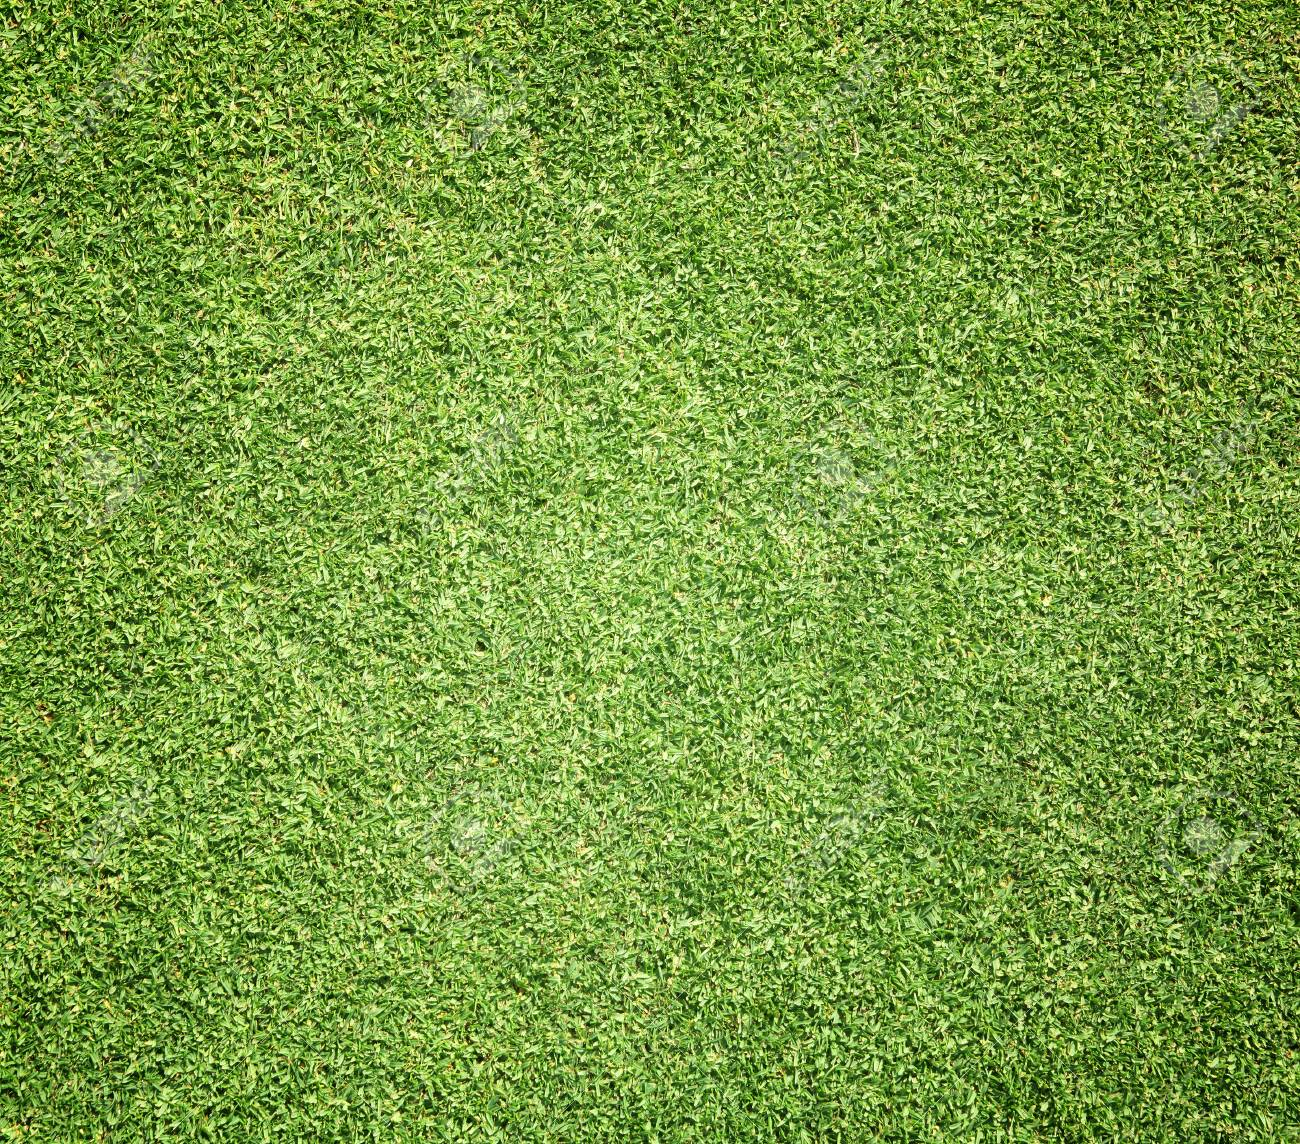 green grass football field grass texture seamless background of green grass golf course football field background texture pattern stock photo of green grass golf course football field